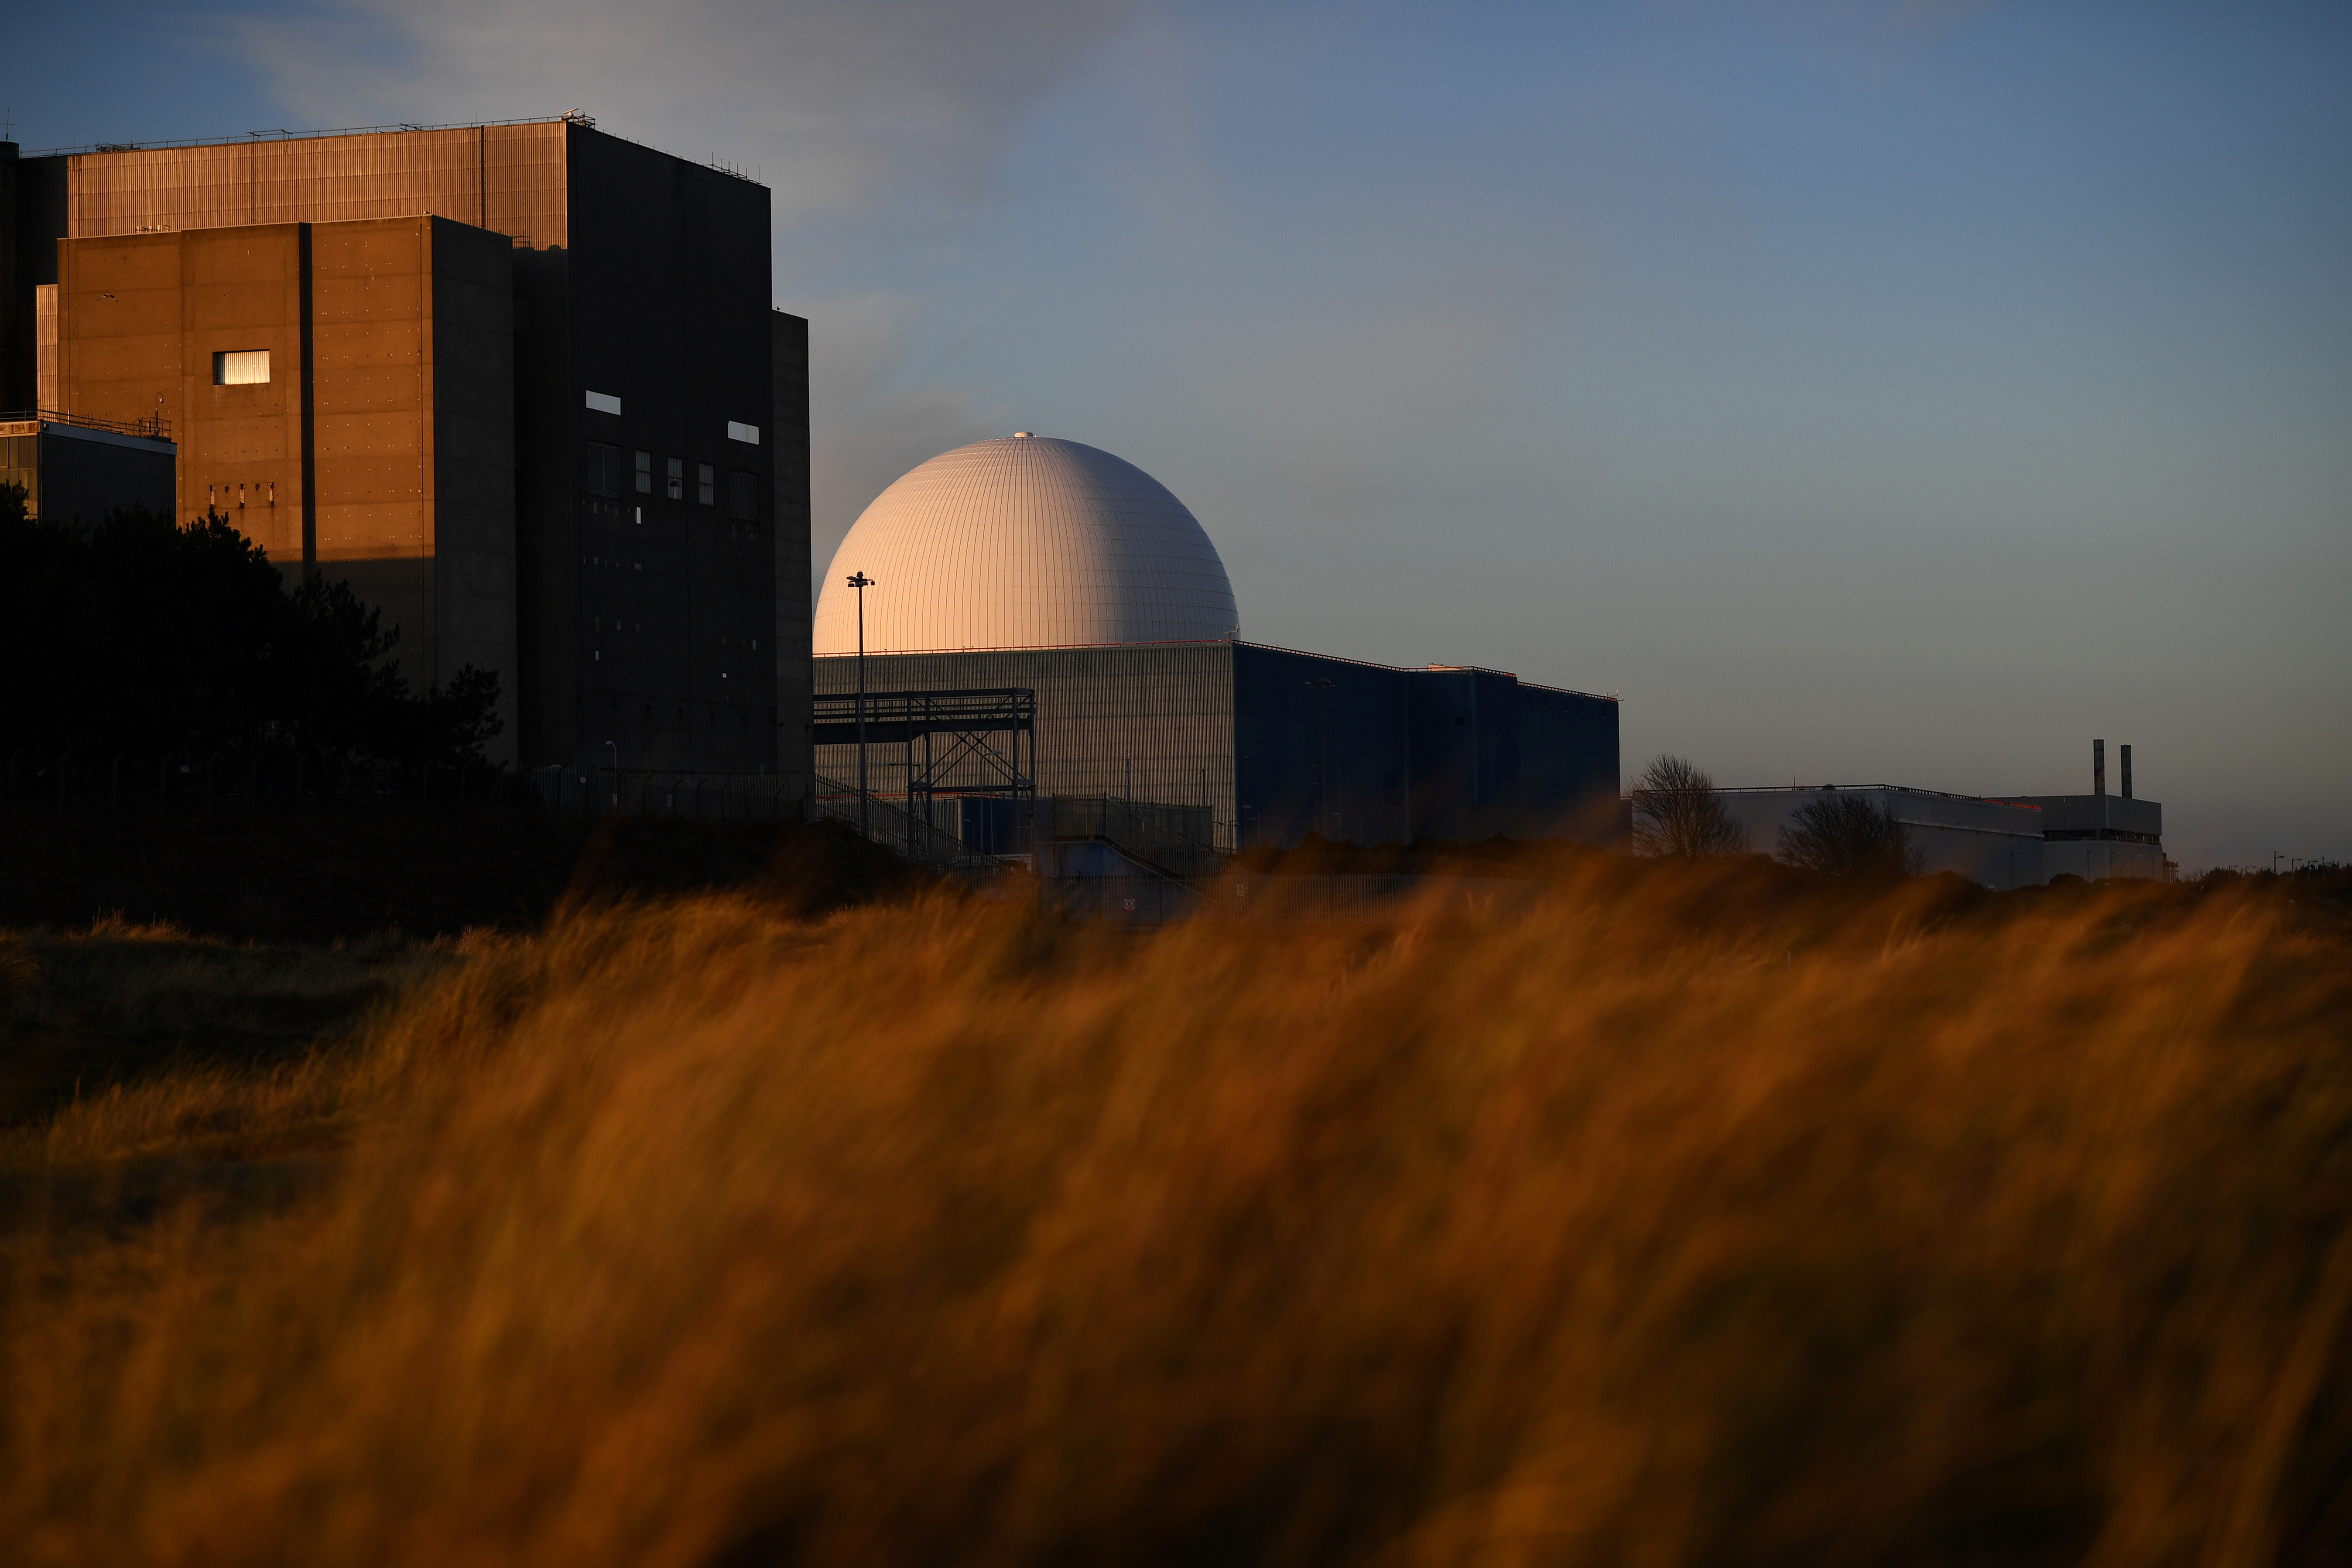 Sizewell nuclear power station is seen as the sun sets on Sizewell, Suffolk in Britain, December 16, 2017. Picture taken December 16, 2017